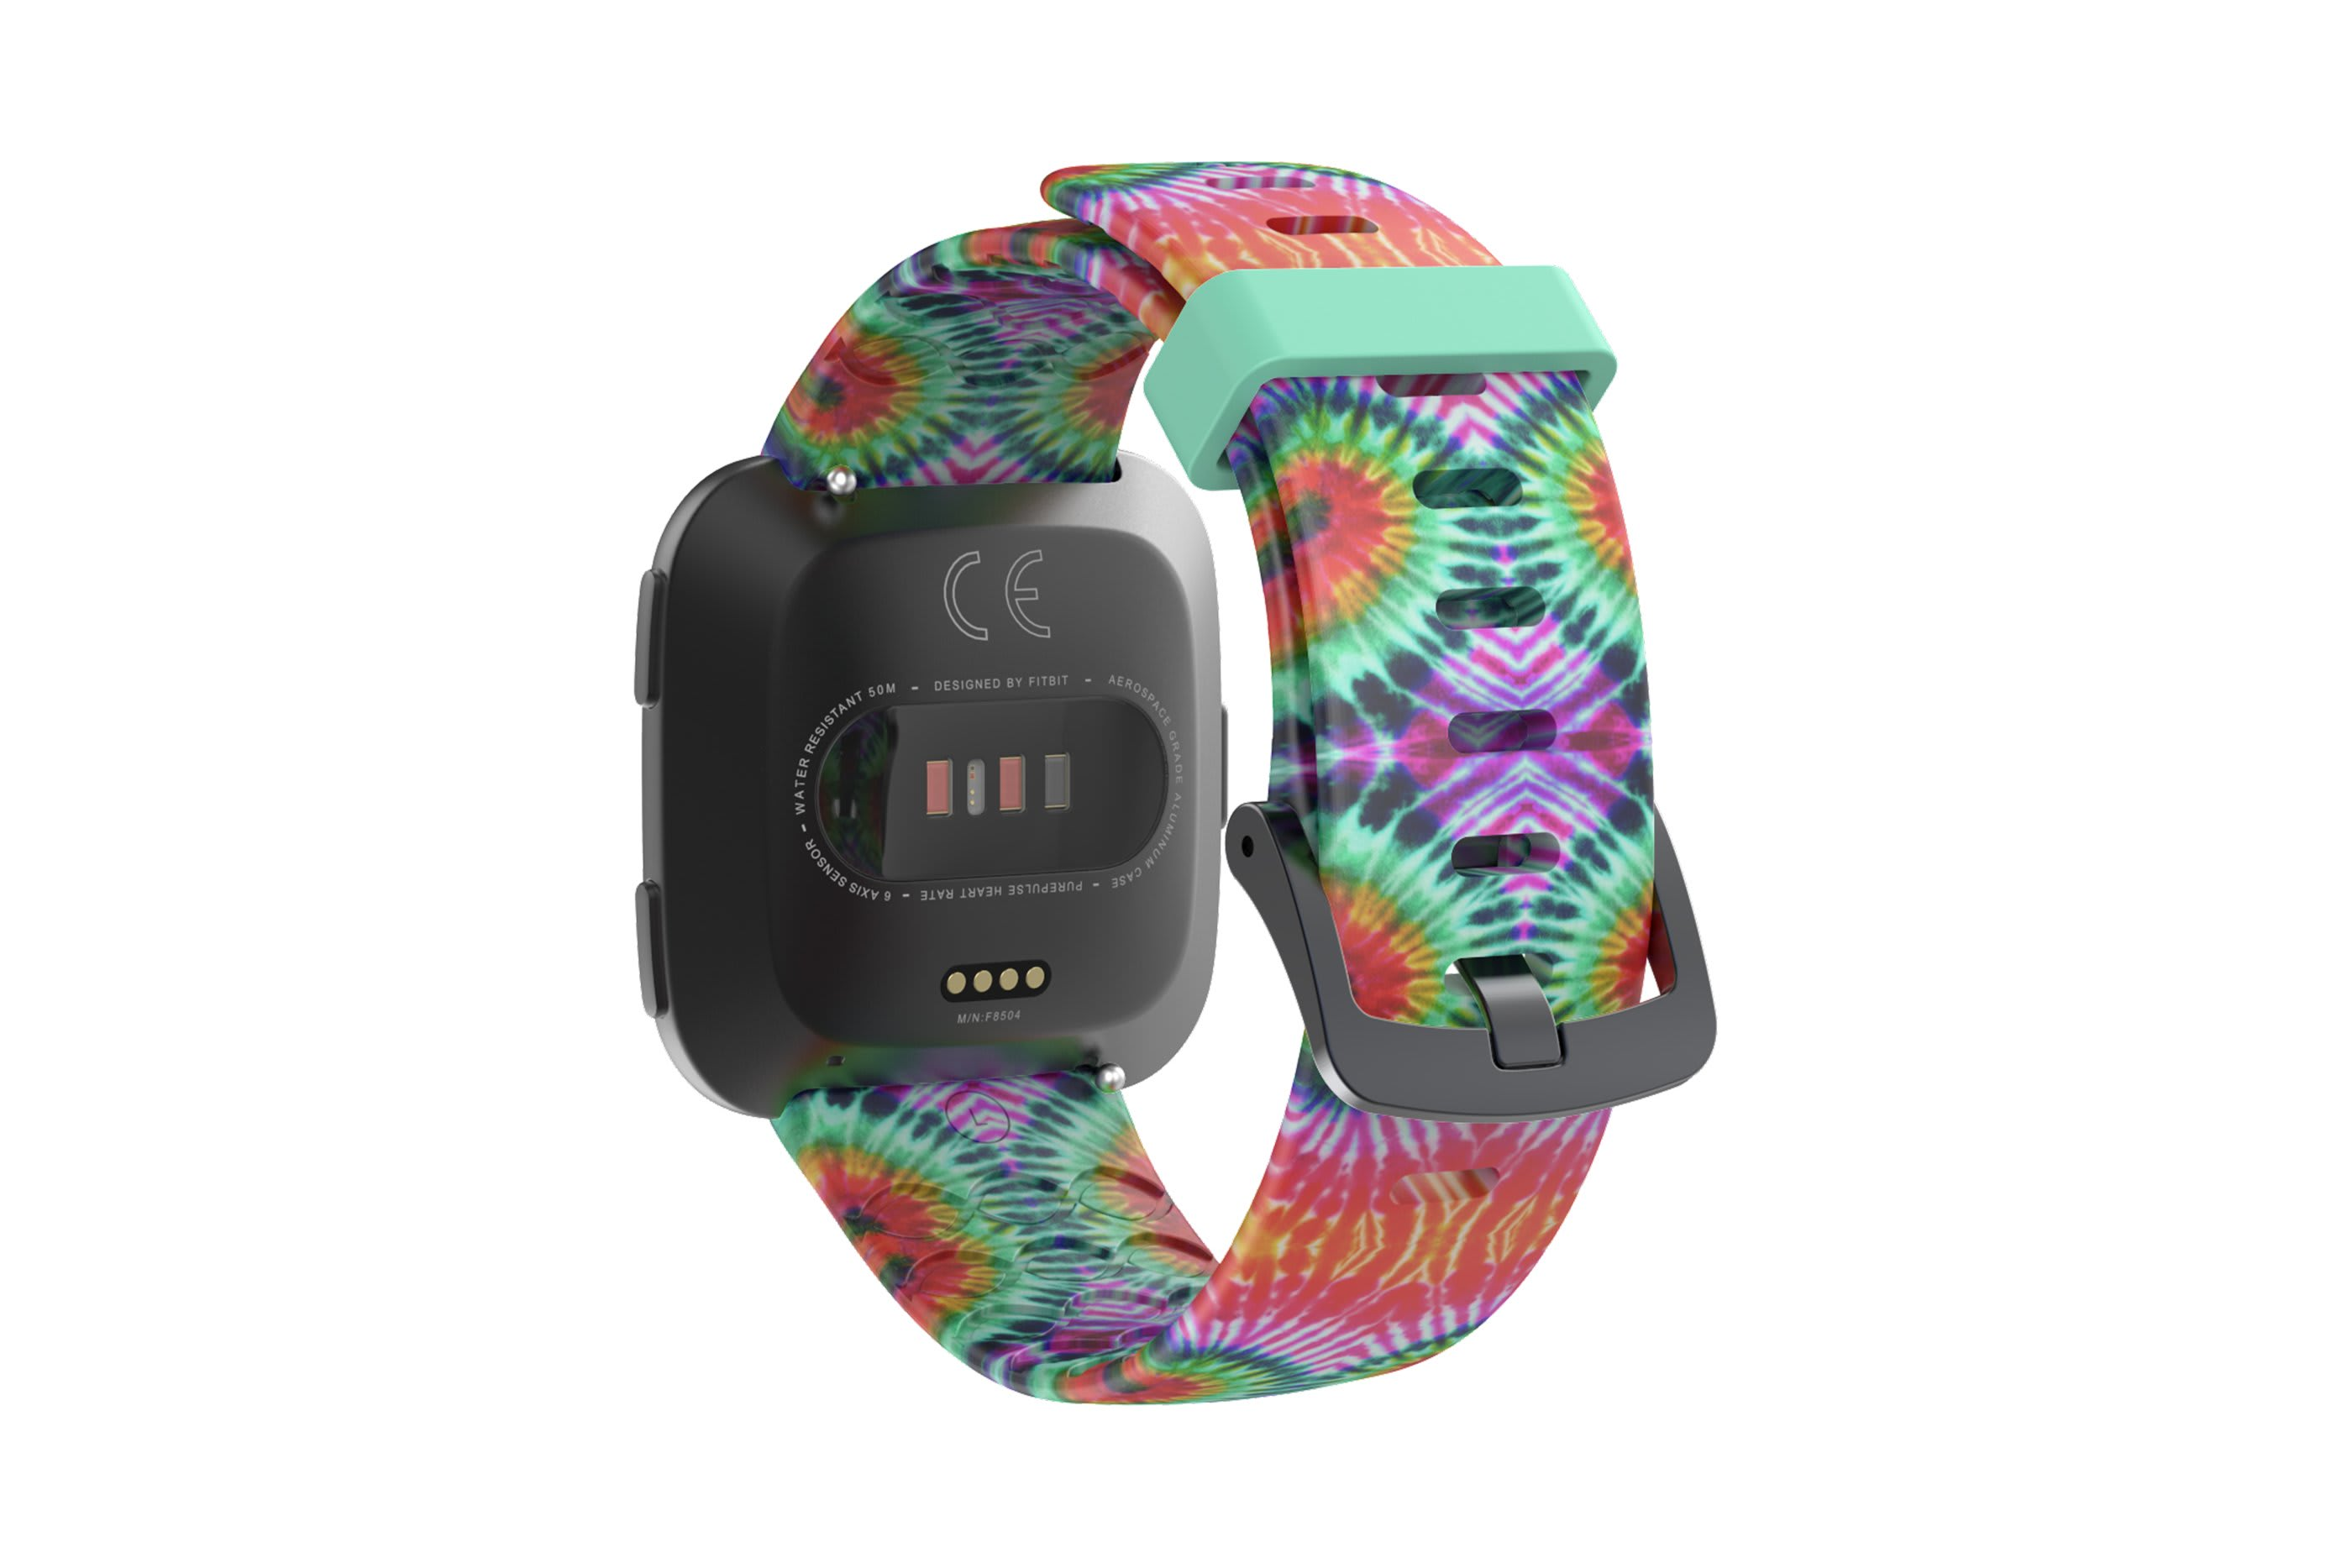 Gypsy Eyes fitbit versa watch band with gray hardware viewed from top down